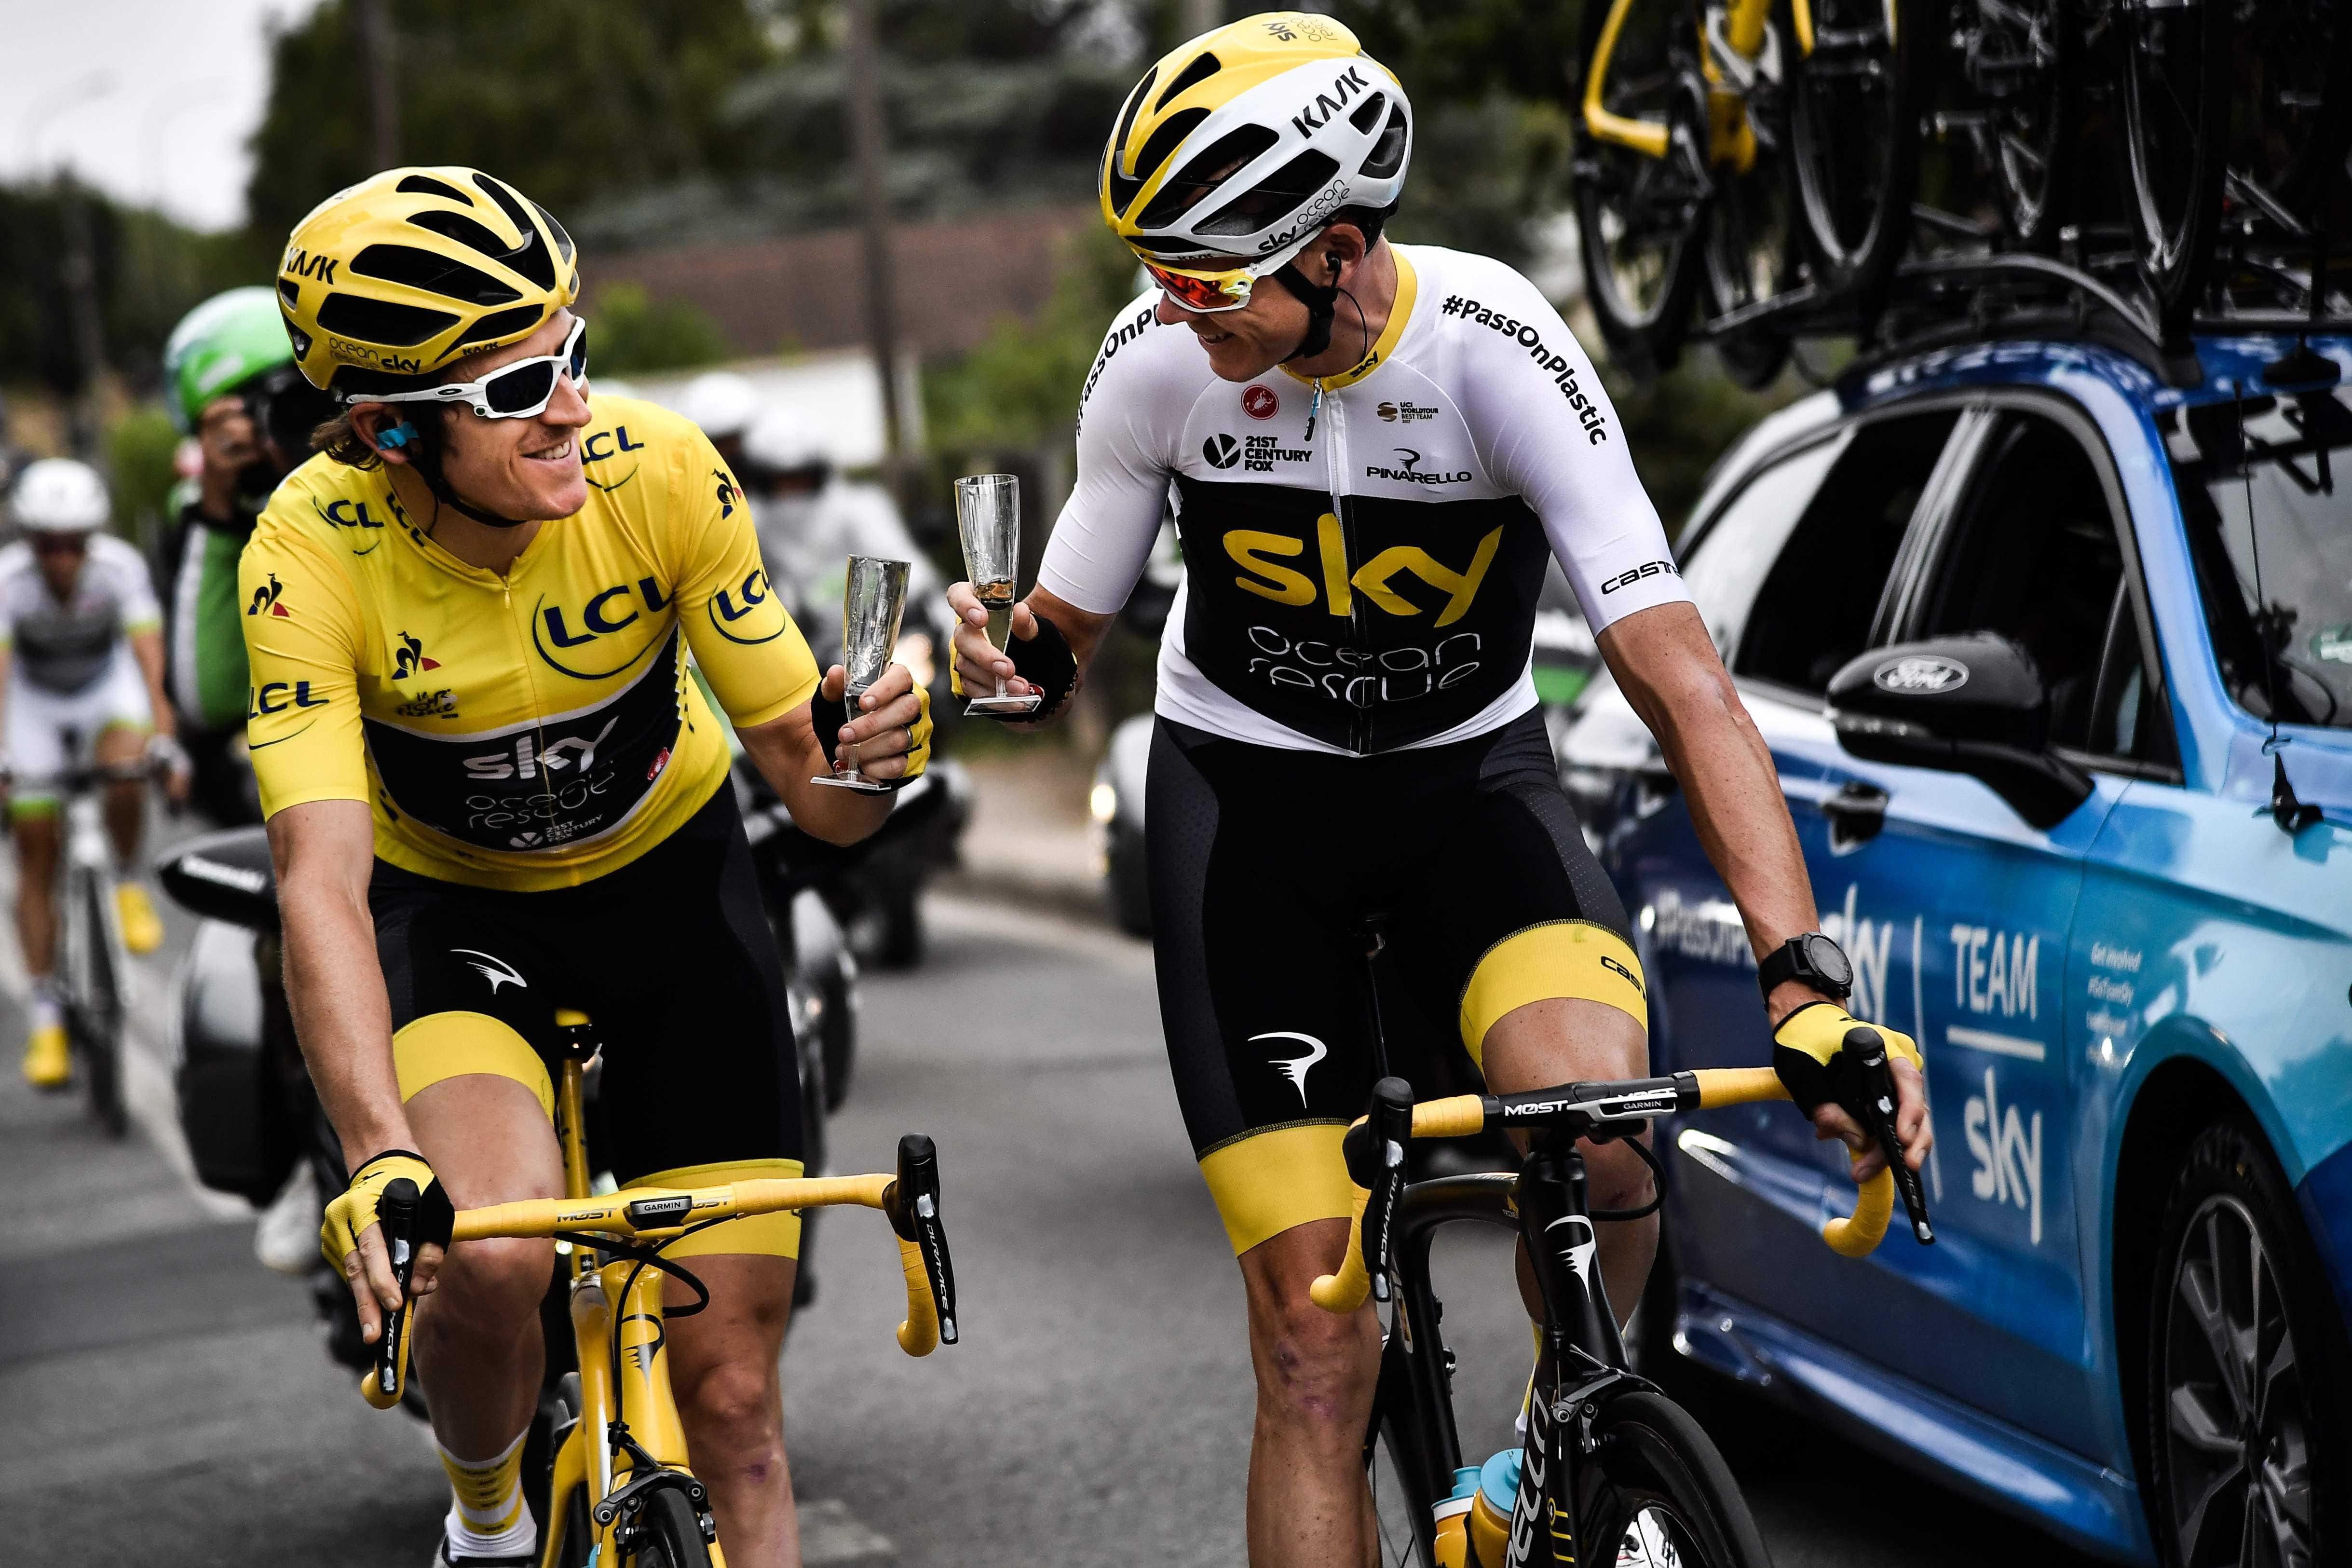 Thomas and pal Chris Froome cheers each other after securing first and third on the Tour podium